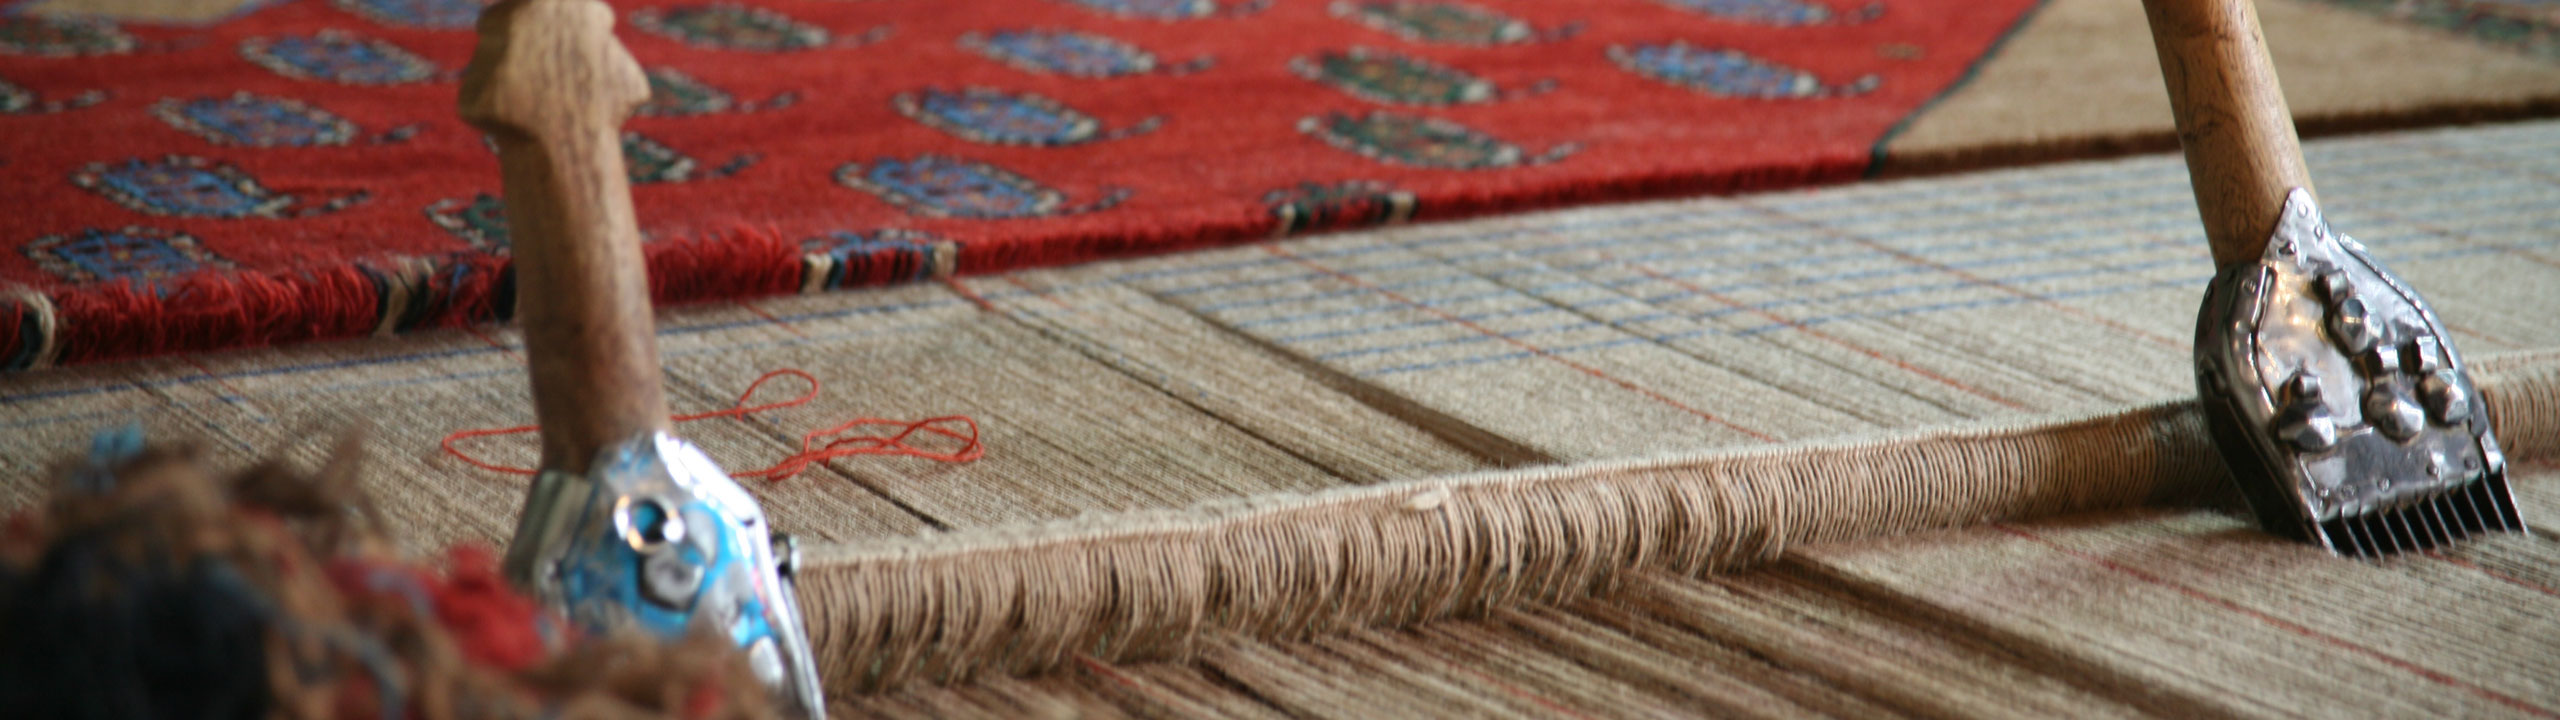 Trivia of Persian Carpets